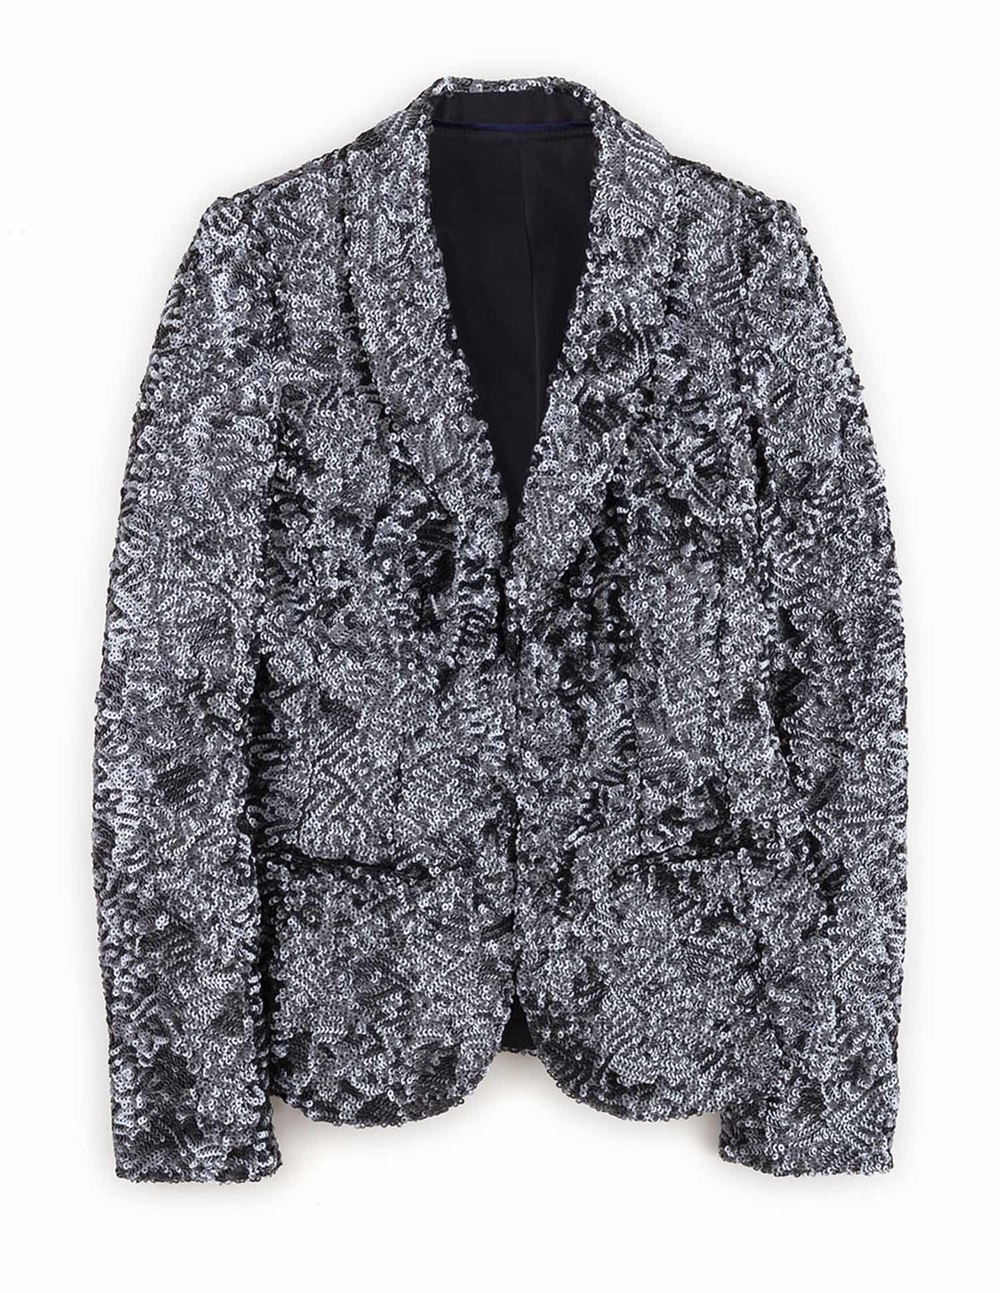 Boden, Arabella Party Blazer £59.60